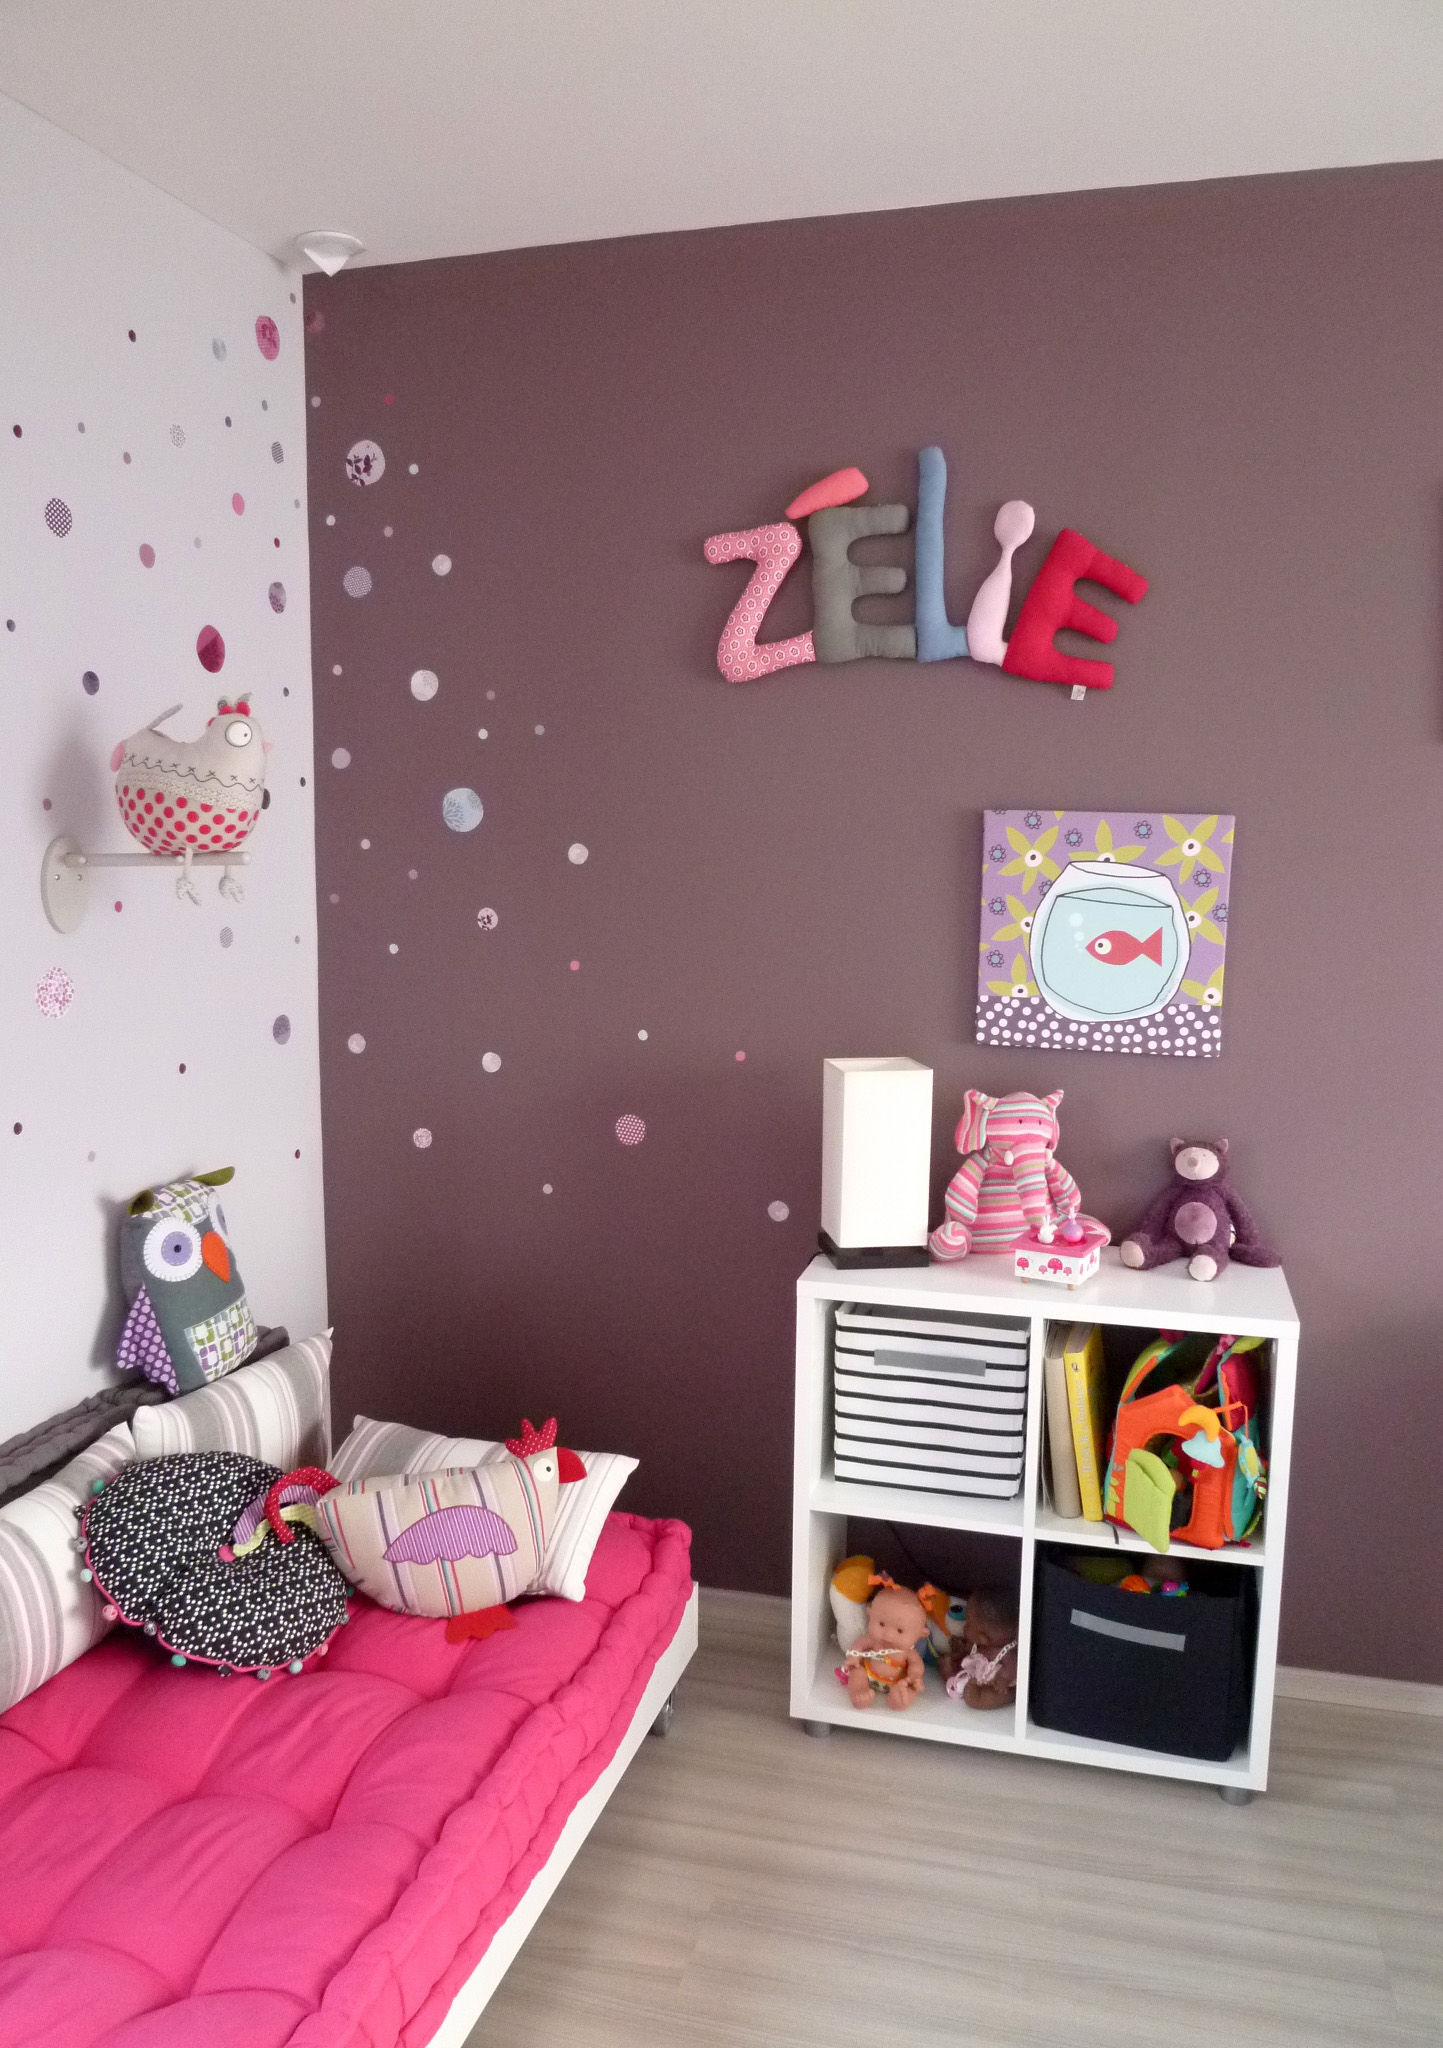 zelie prenom en tissu chambre d 39 enfant prenom decoratif lettre en tissu photo de les pr noms. Black Bedroom Furniture Sets. Home Design Ideas